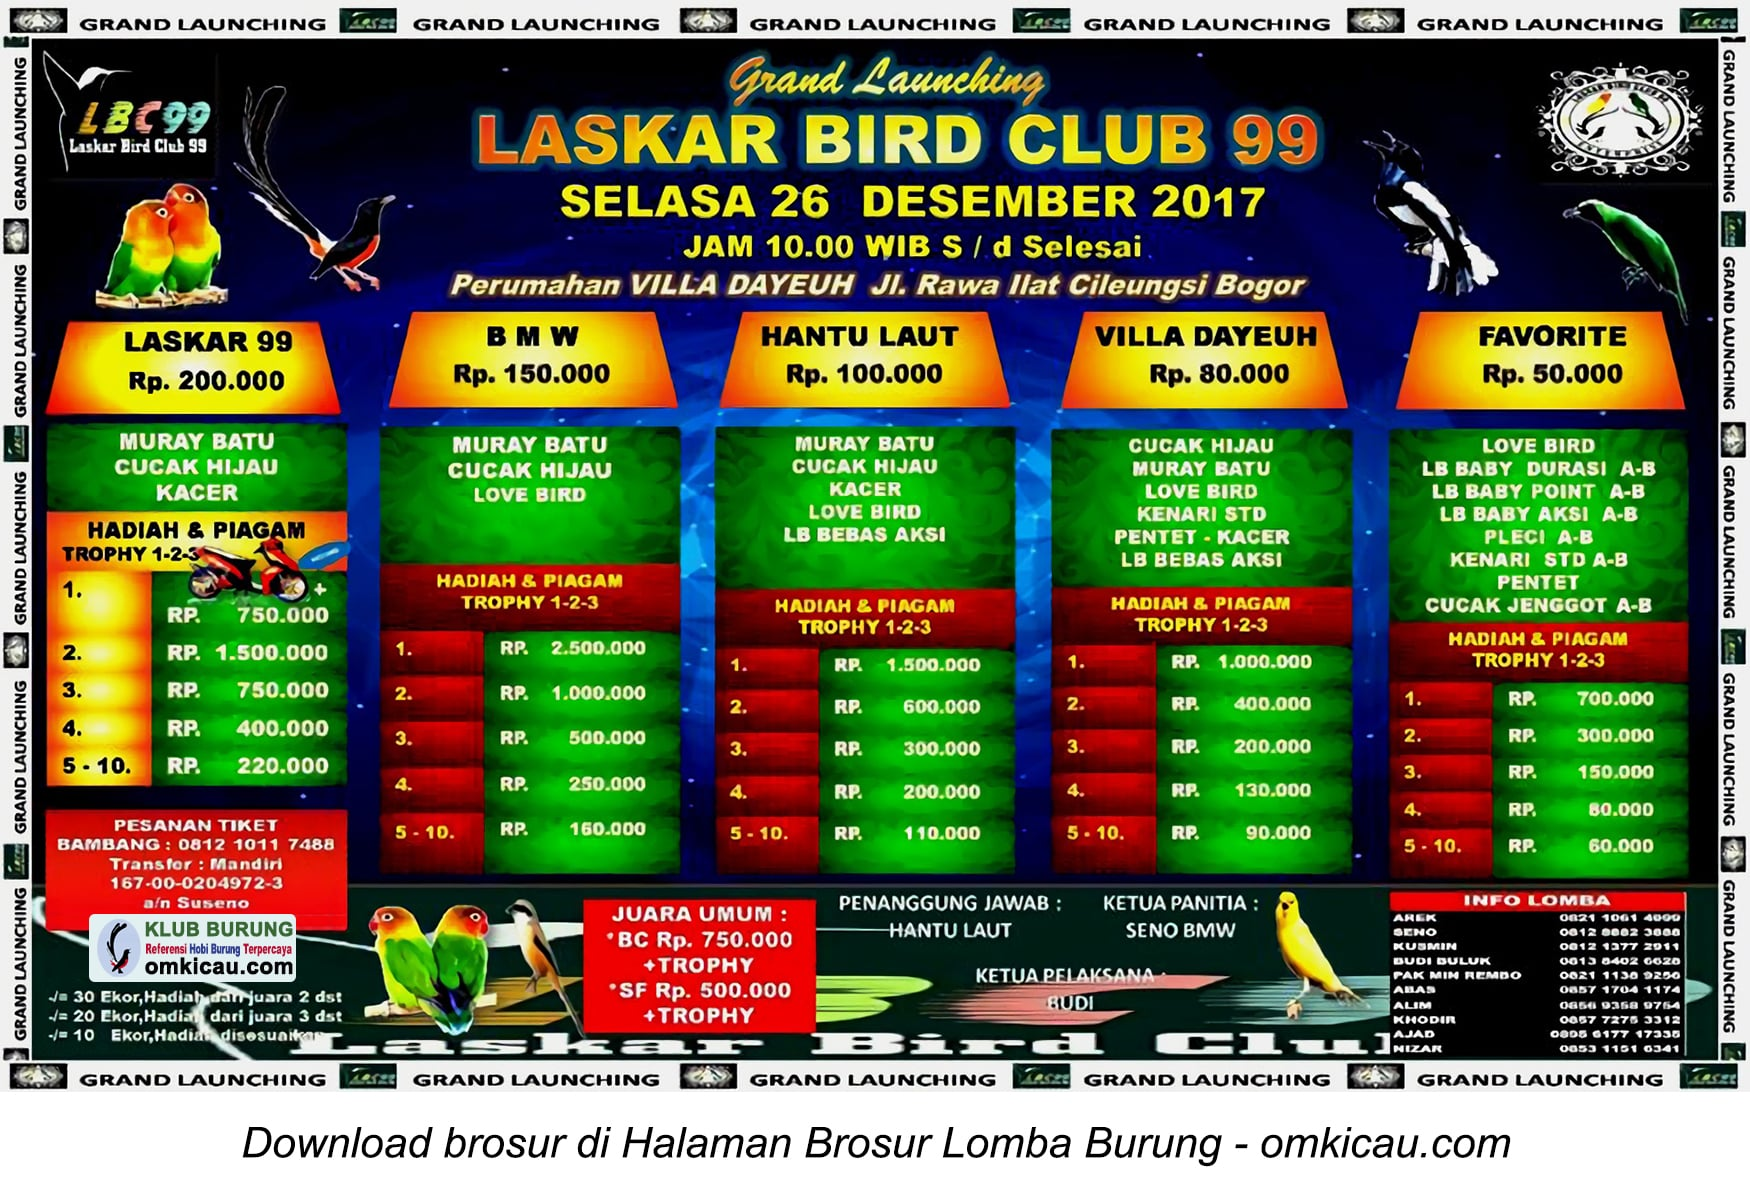 Laskar Bird Club 99